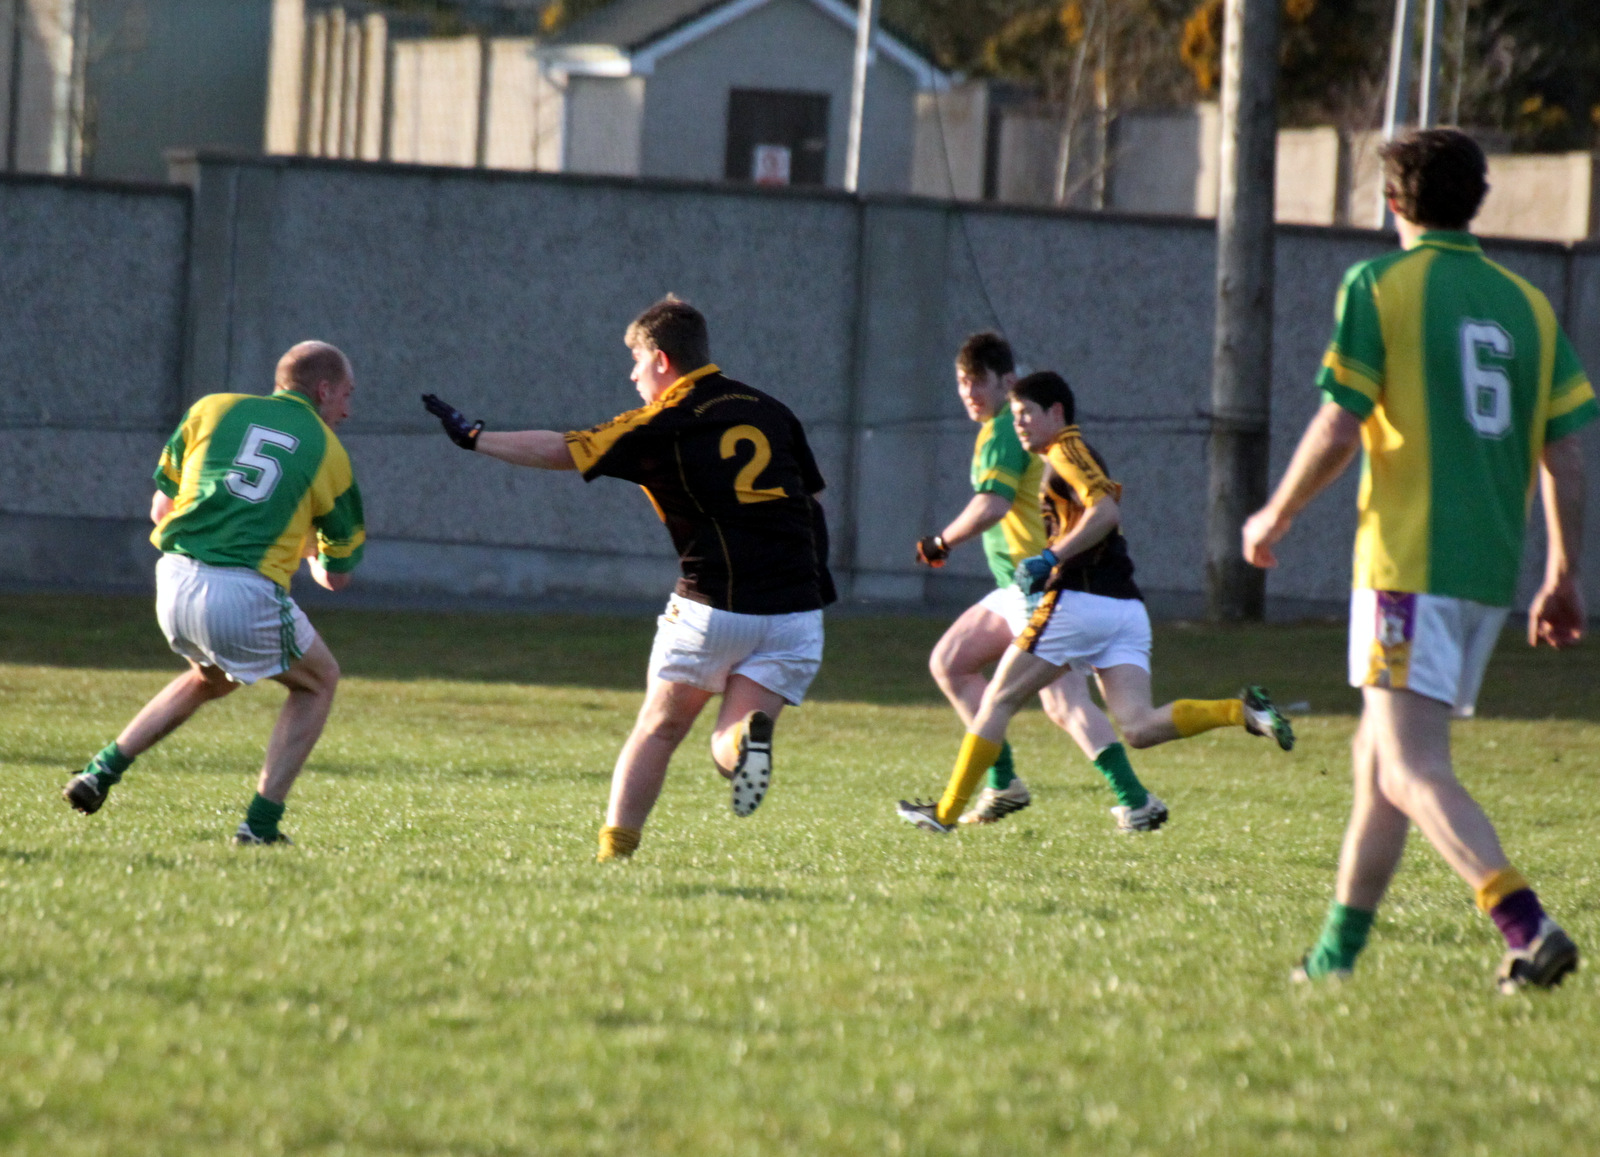 Clonee vs. Adamstown – 2015 Football League